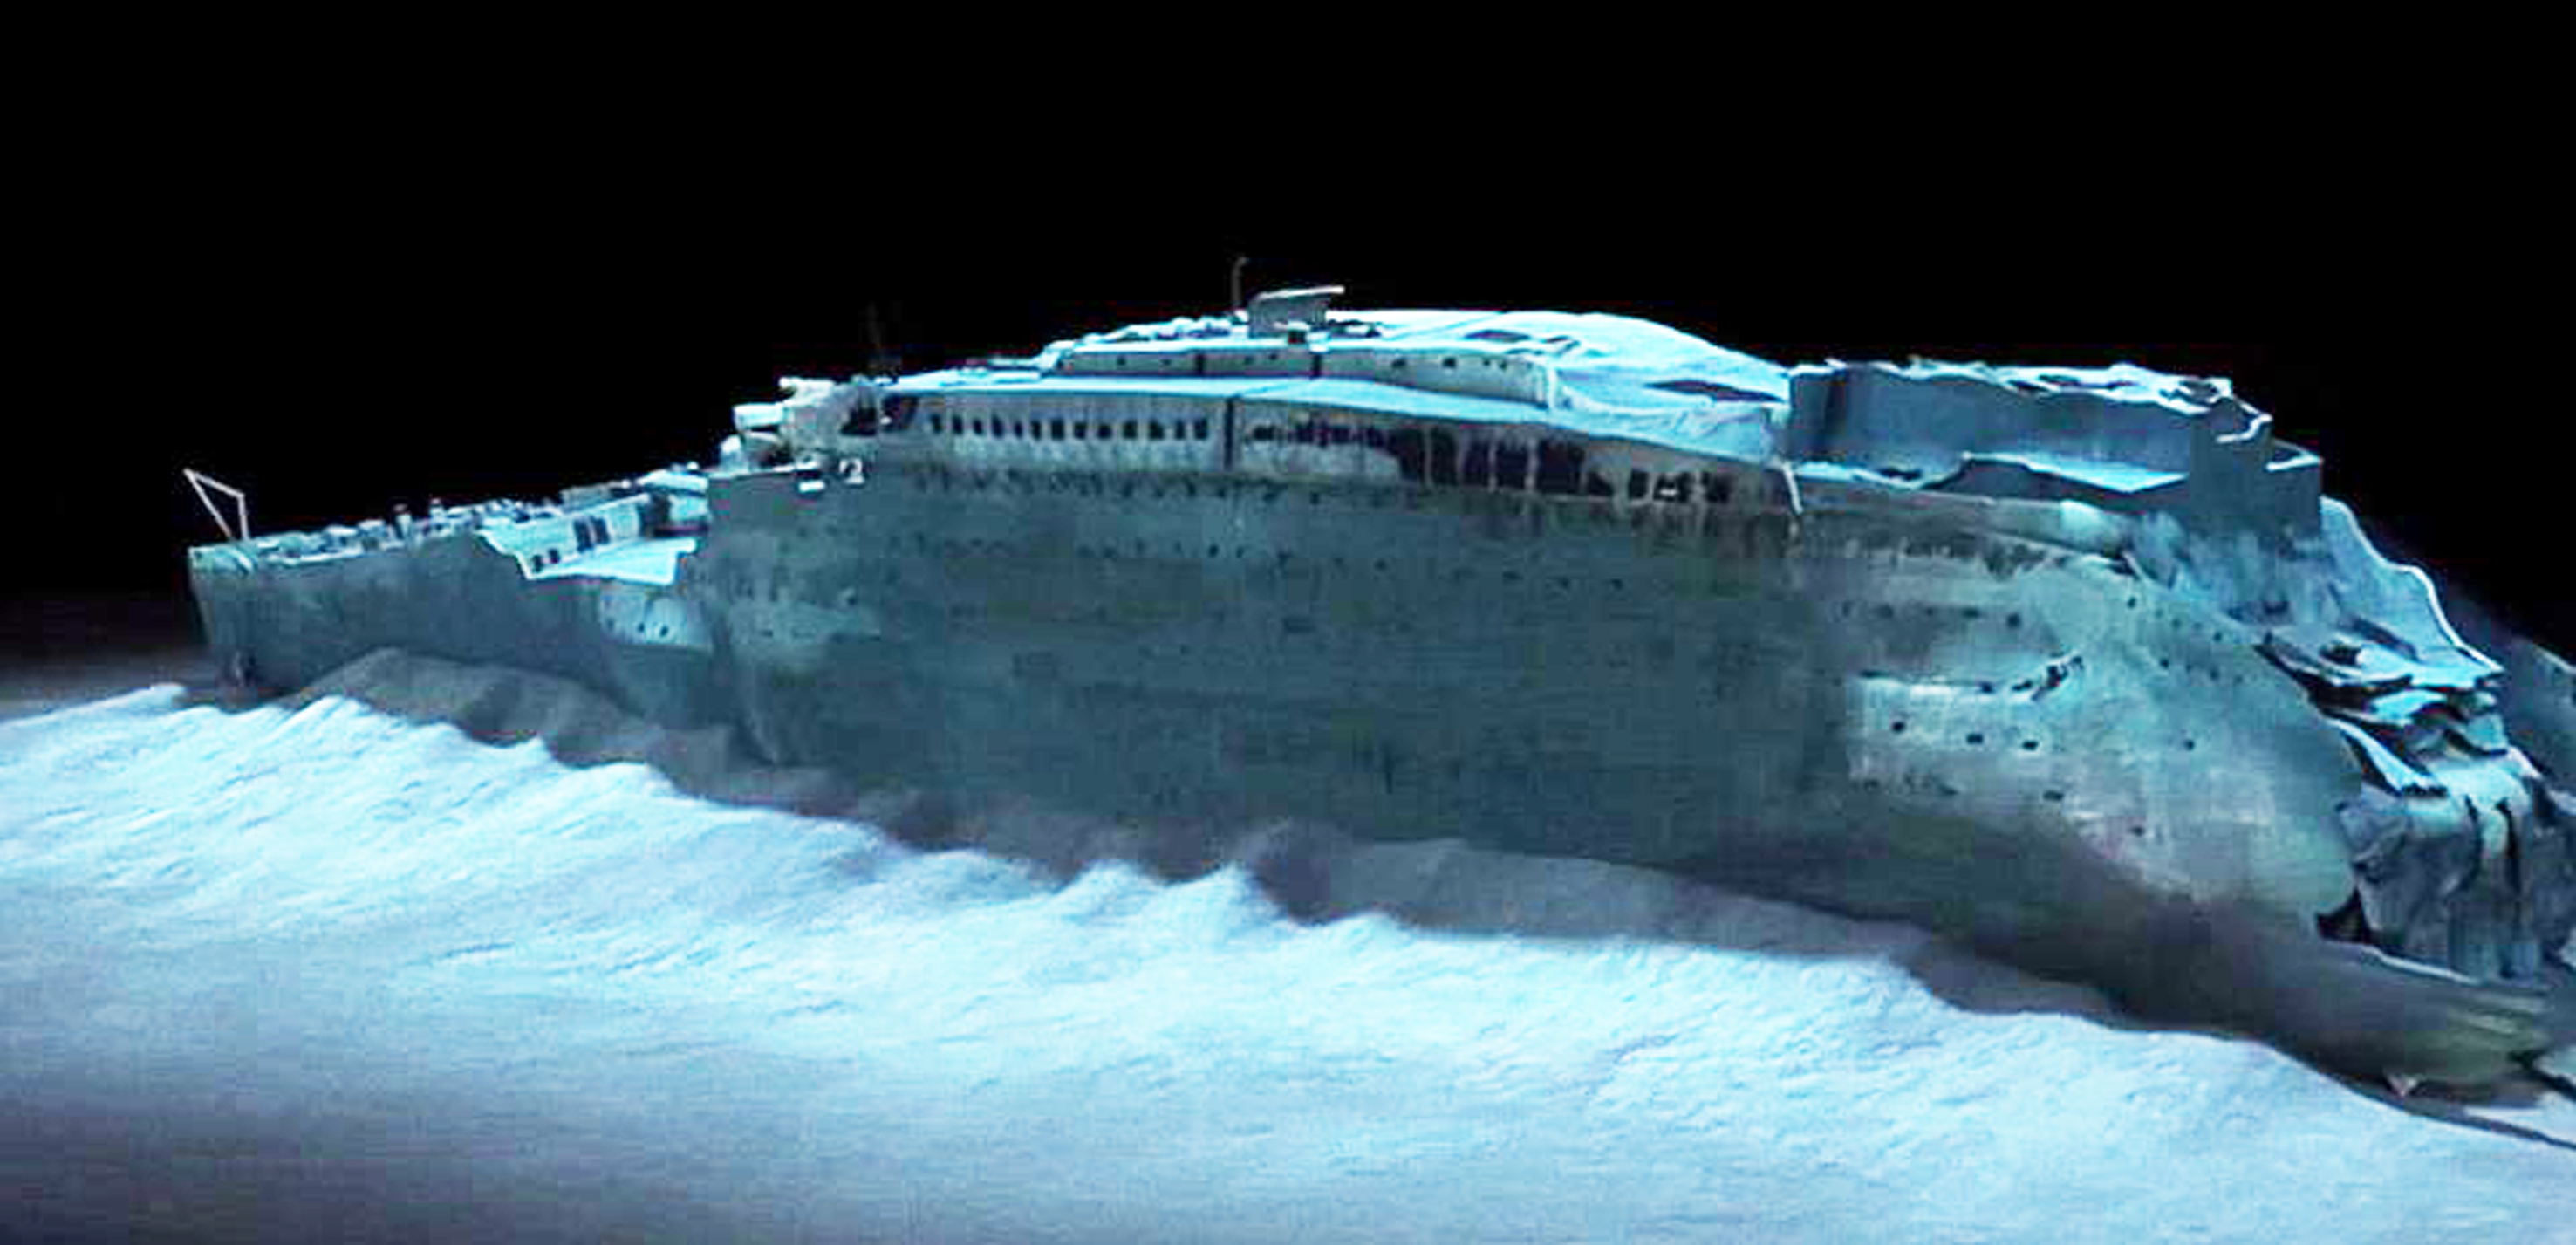 Titanic wreck starboard enhanced by lusitania25 on DeviantArt